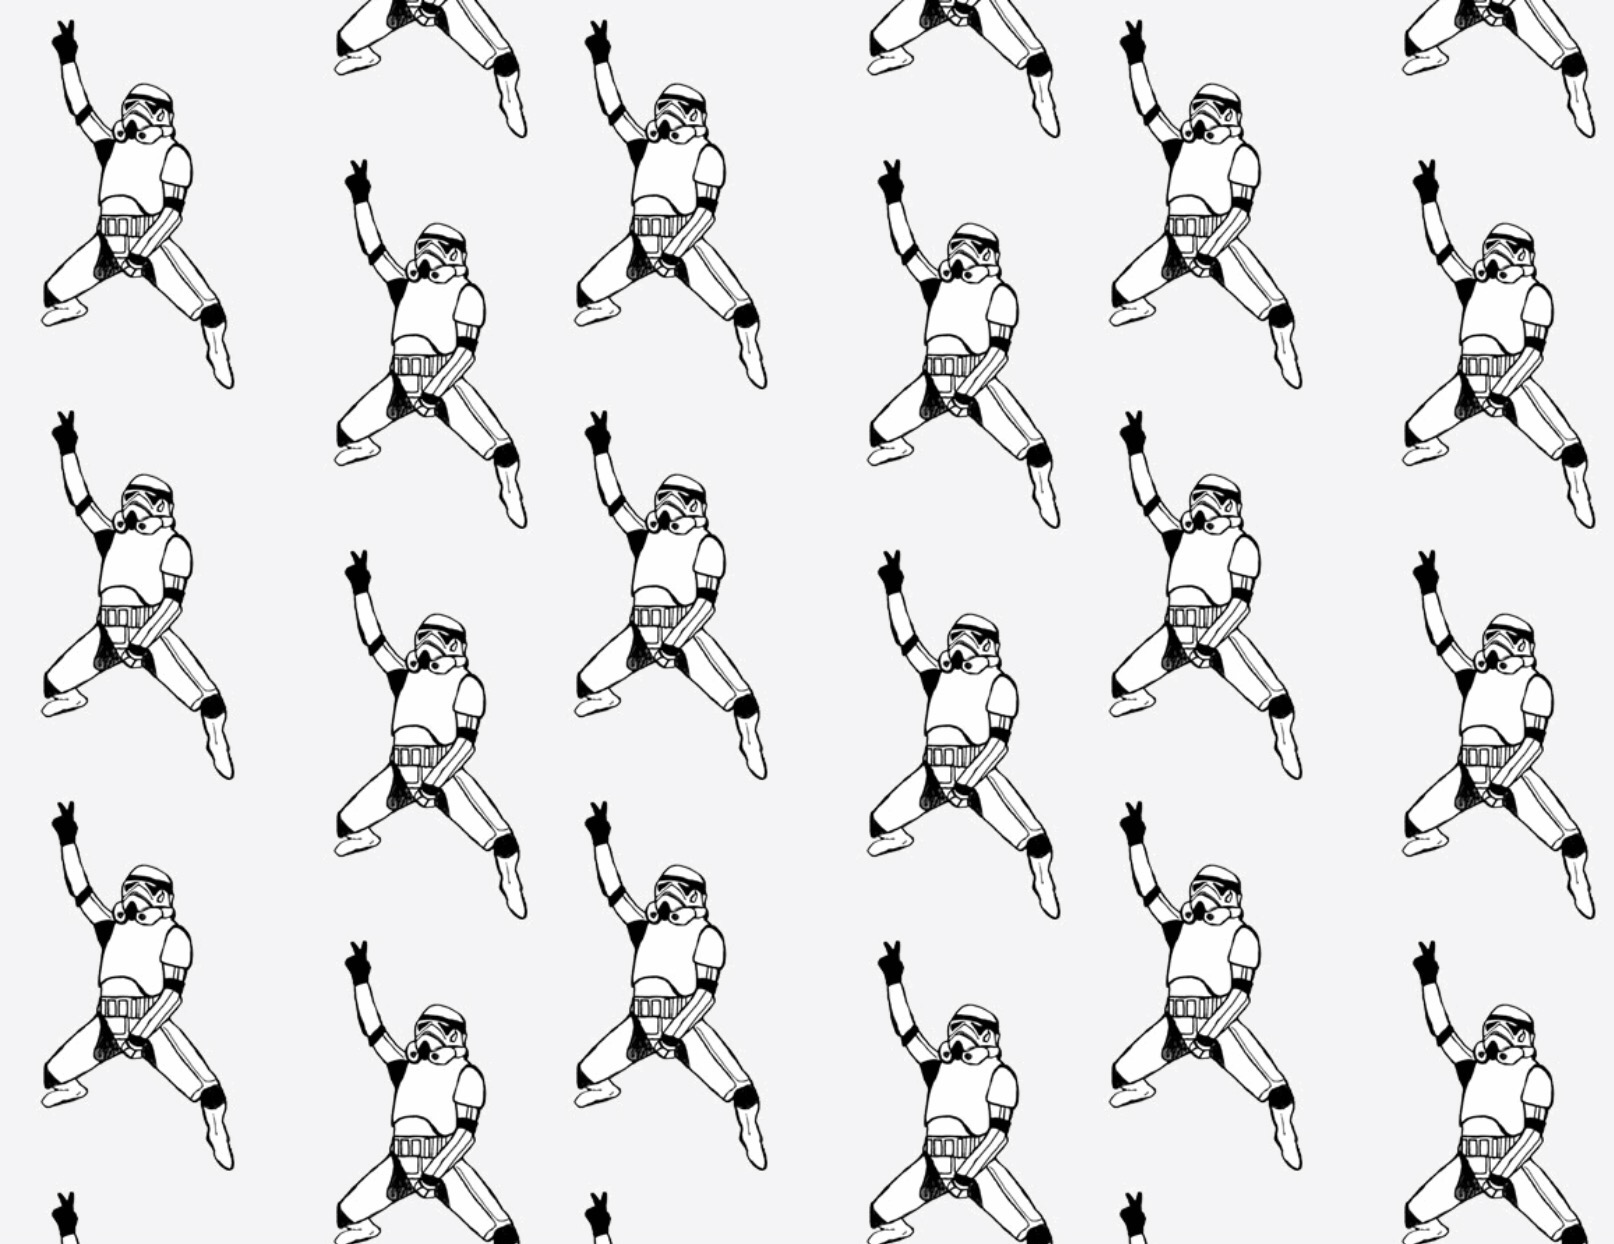 Good Wallpaper Black And White Star Wars - Star-Wars-Stormtroopers-wallpaper-patterns-backgrounds-wallpaper-39763915-1614-1244  Best Photo Reference_845272.jpg